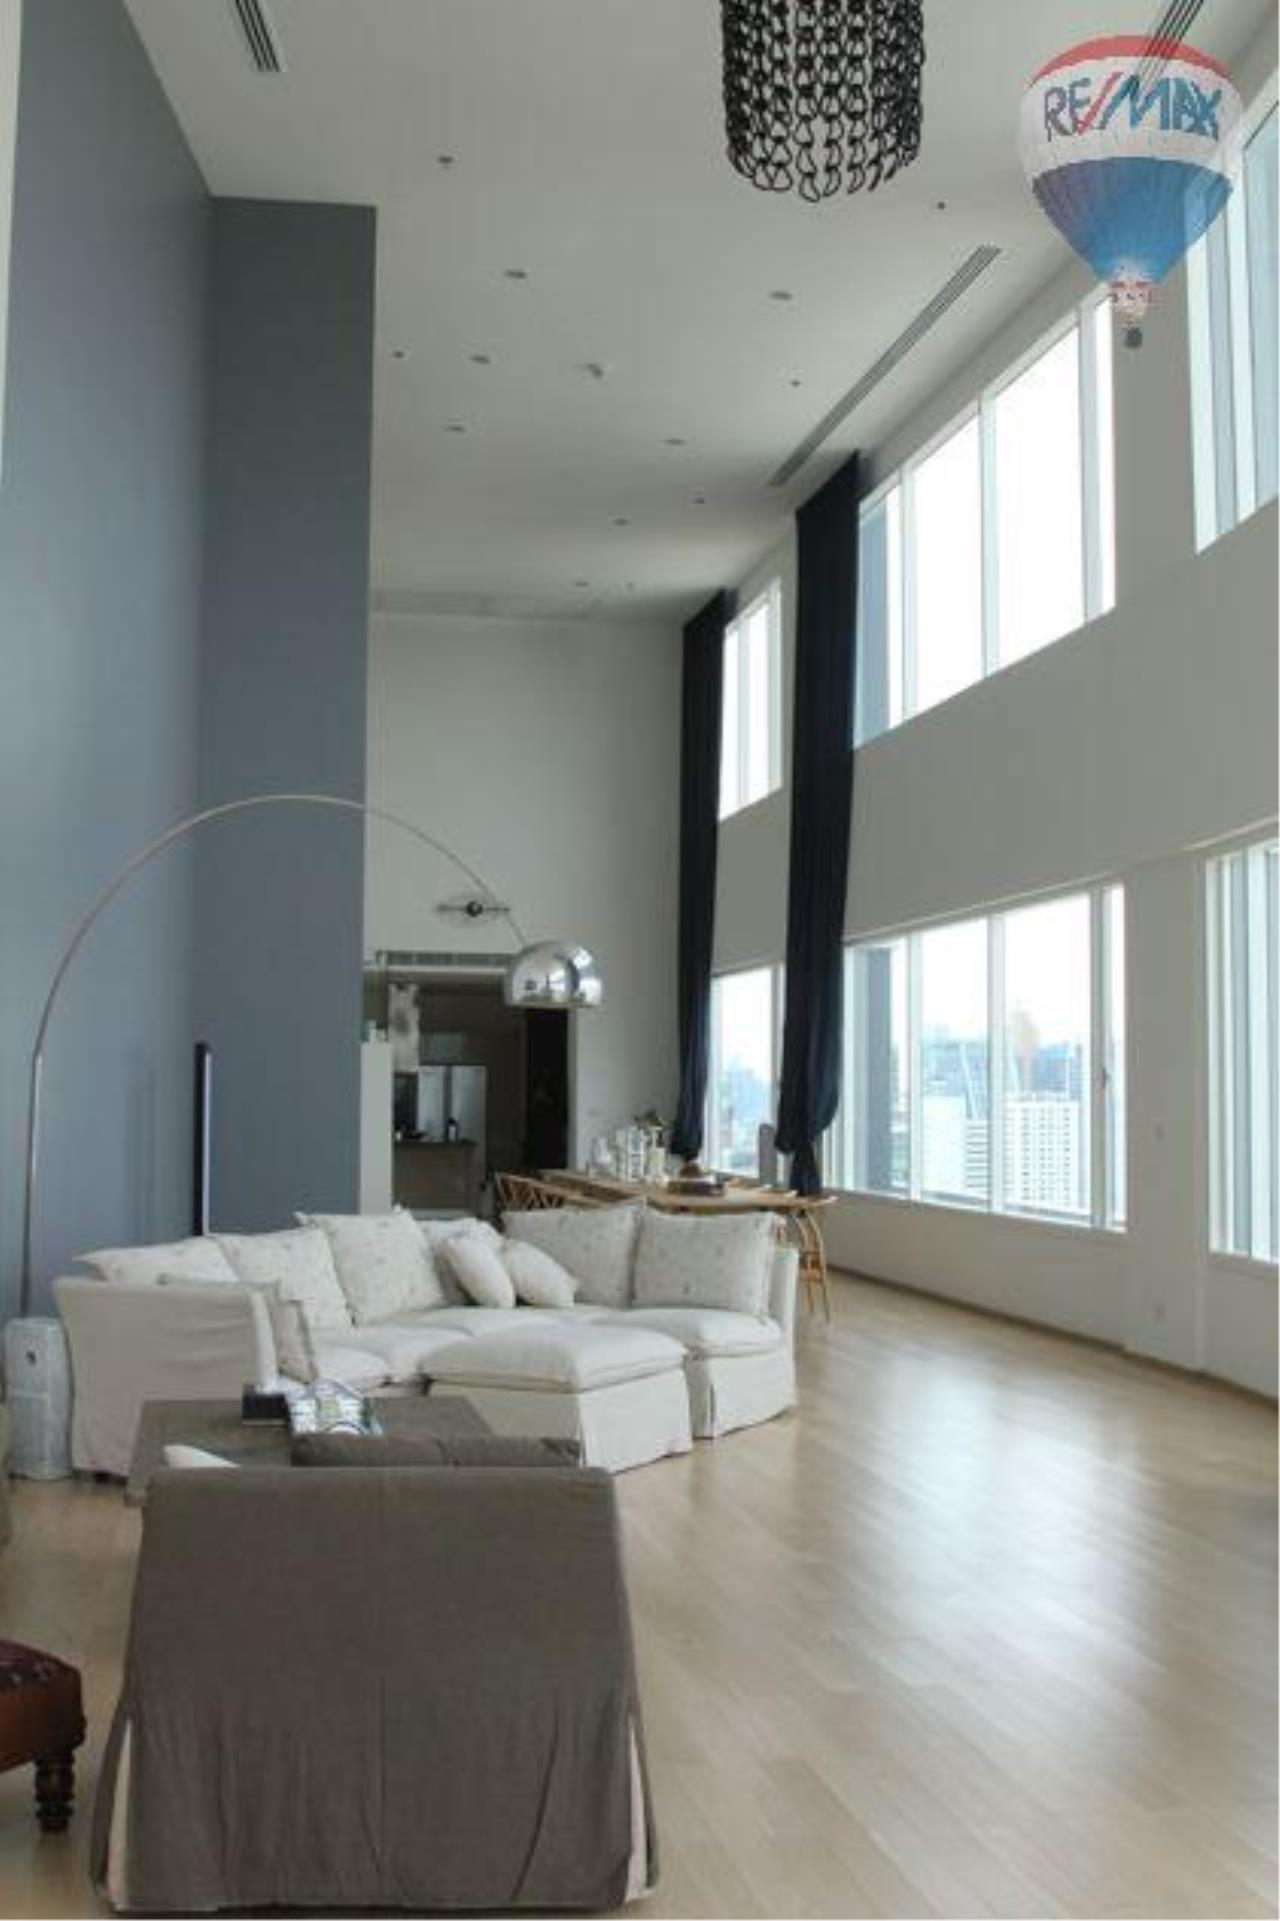 RE/MAX Properties Agency's Penthouse 3 Bedrooms Apartment for SALE 12